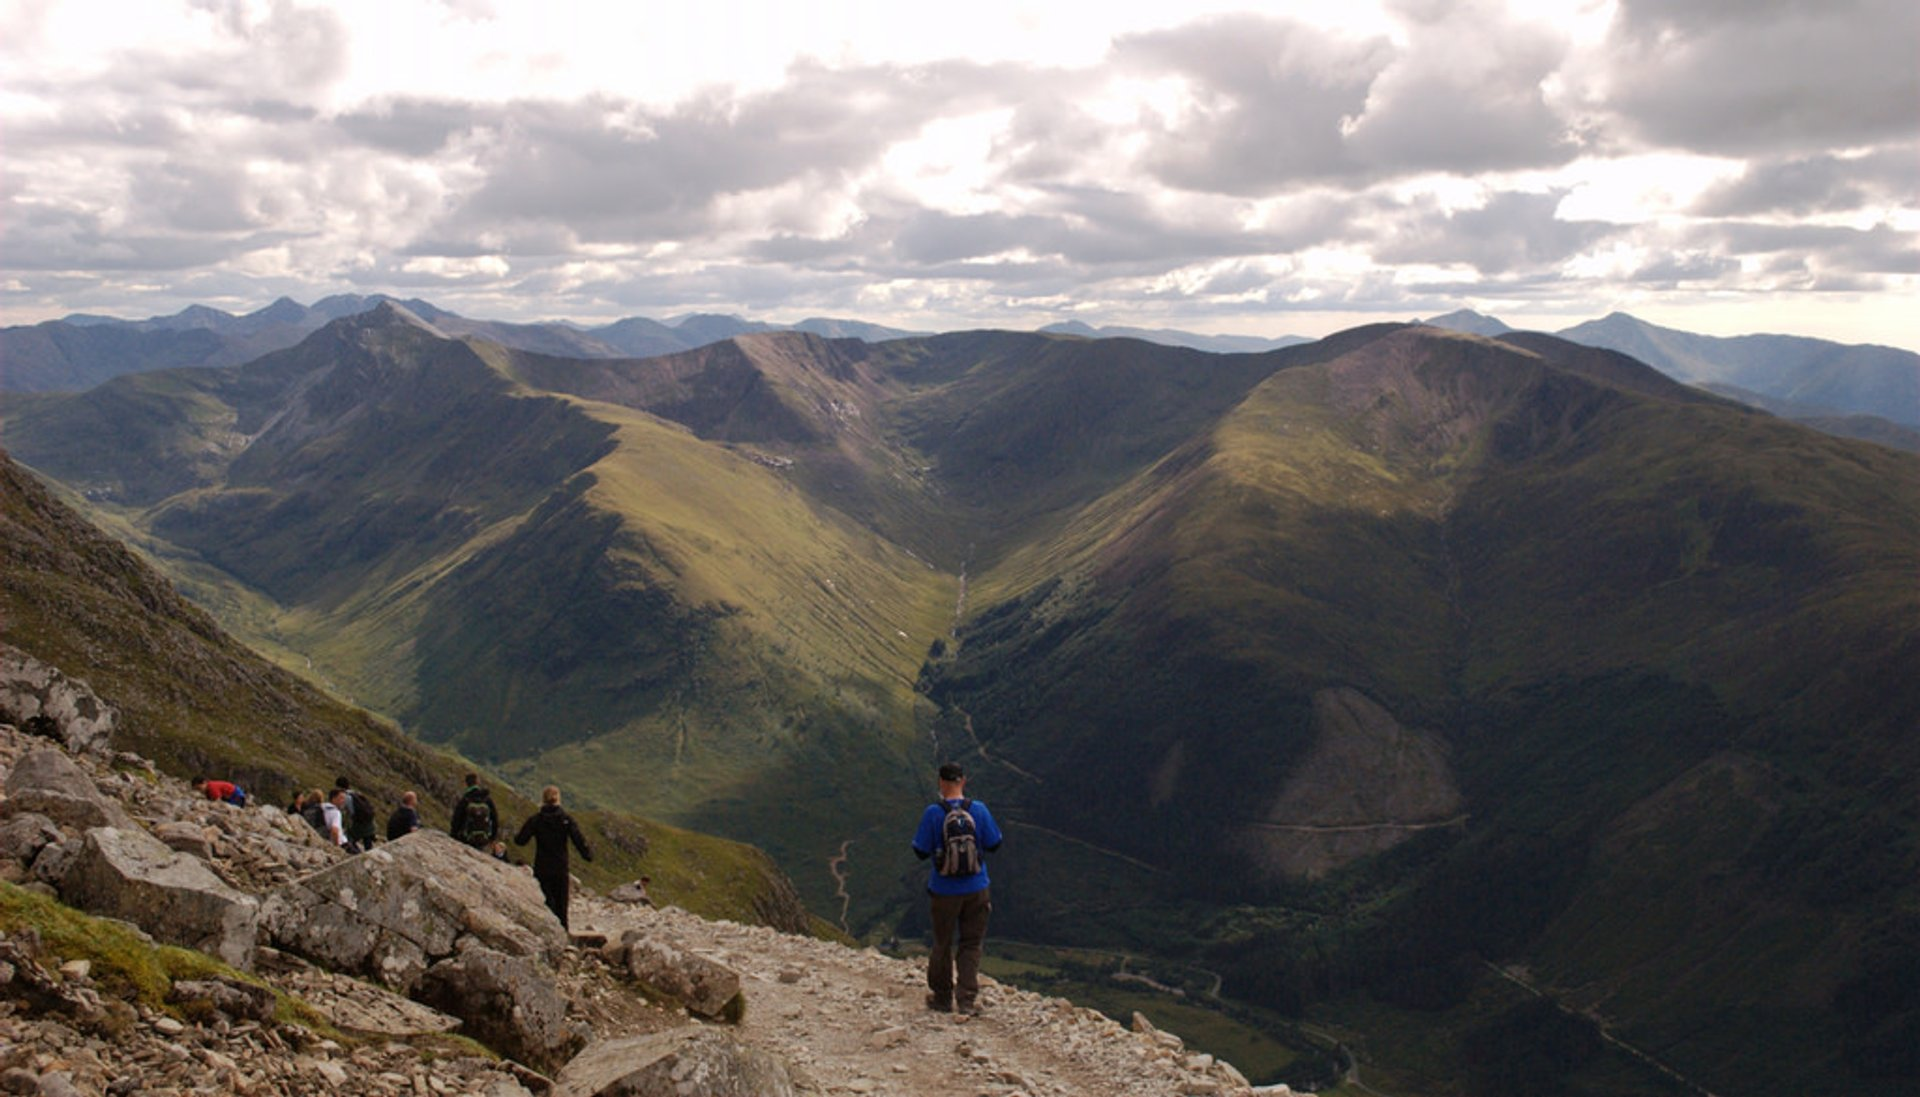 View from Ben Nevis 2020